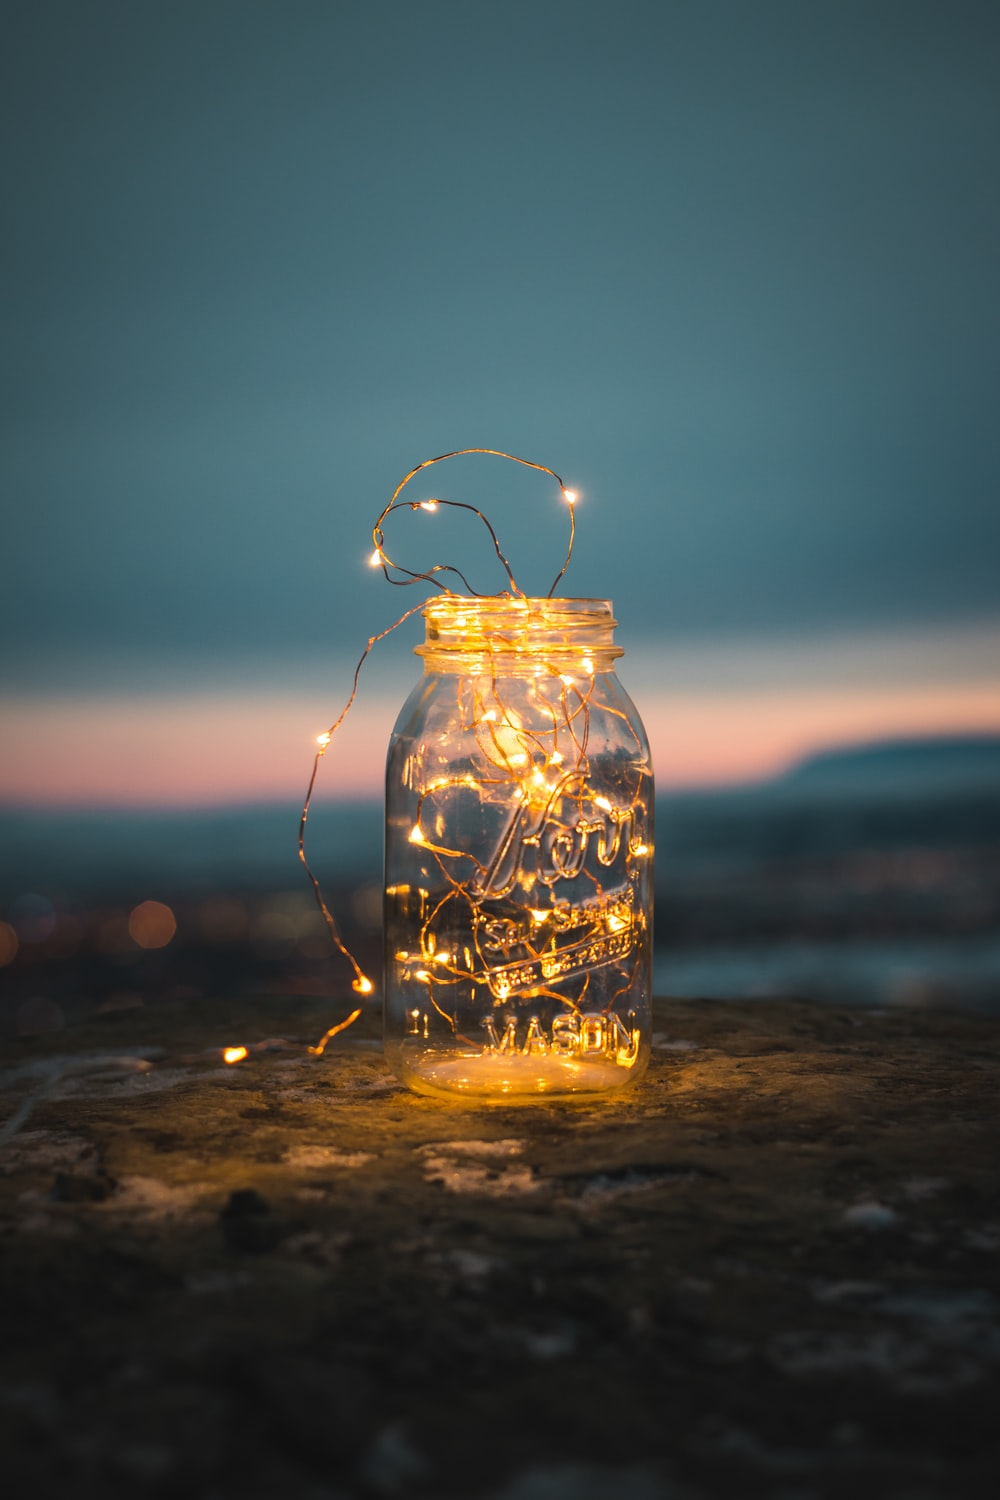 12+ Fairy Lights Pictures   Download Free Images on Unsplash